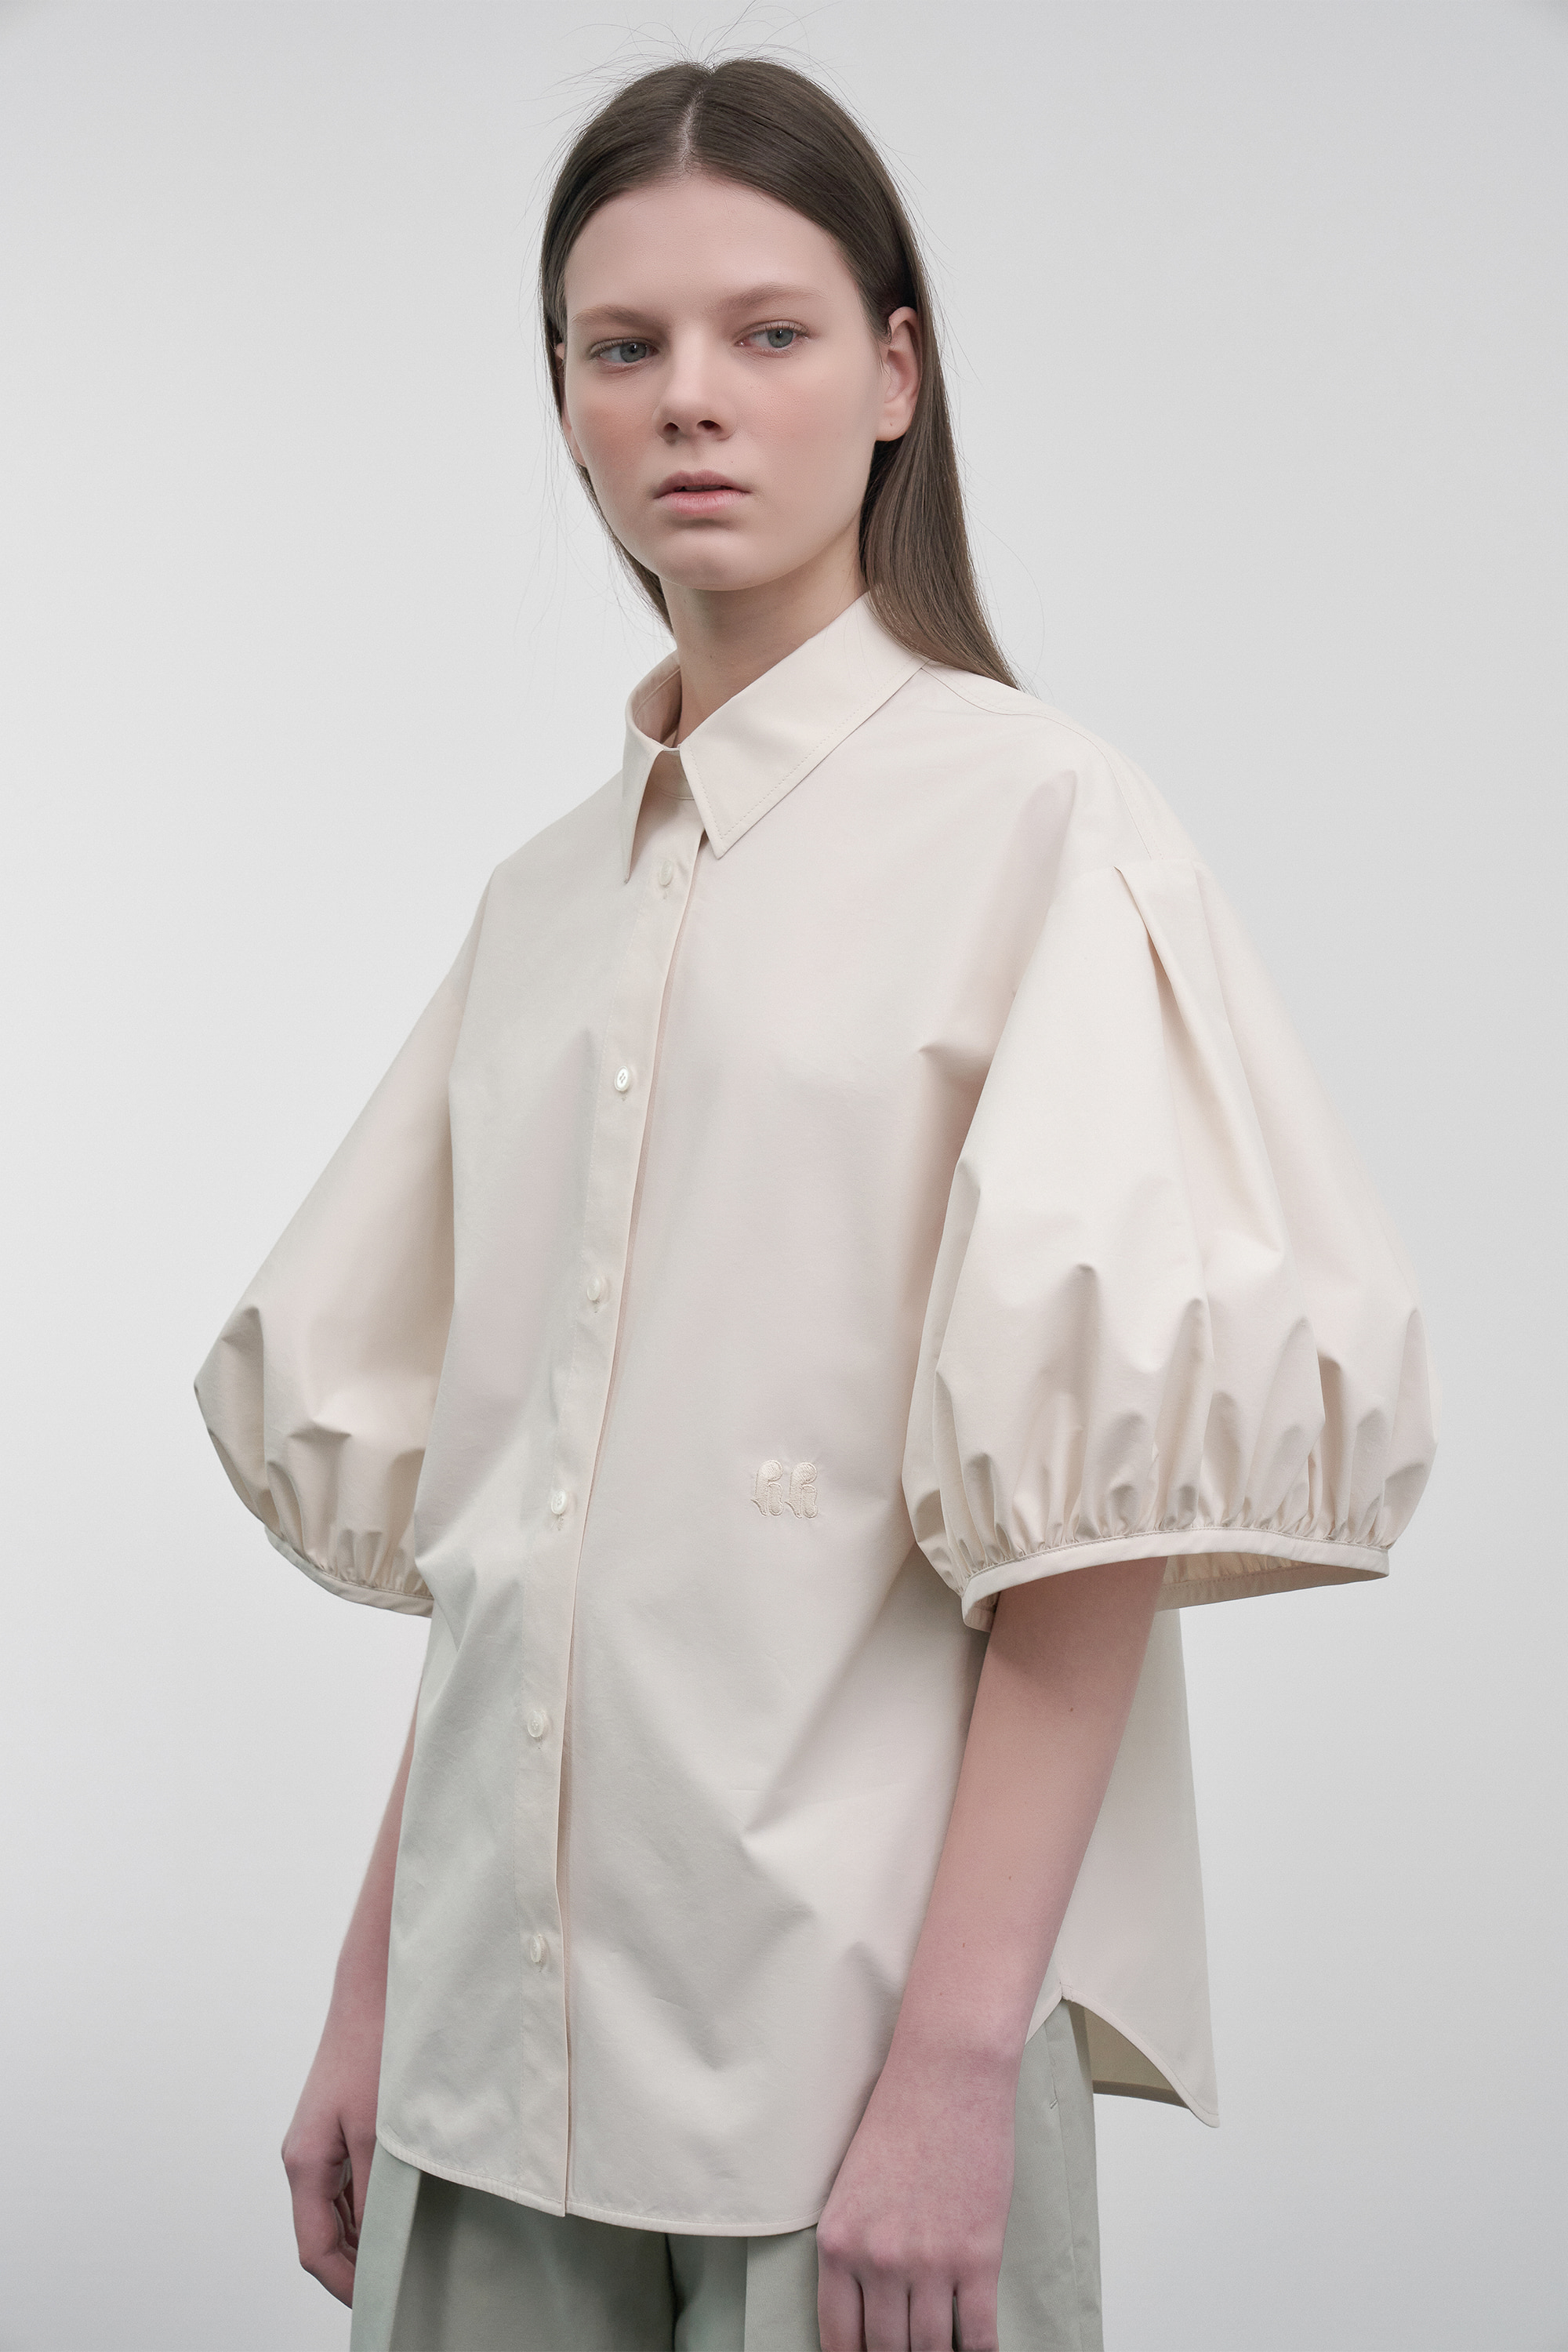 Volume Puff-Sleeved Blouse (cream)